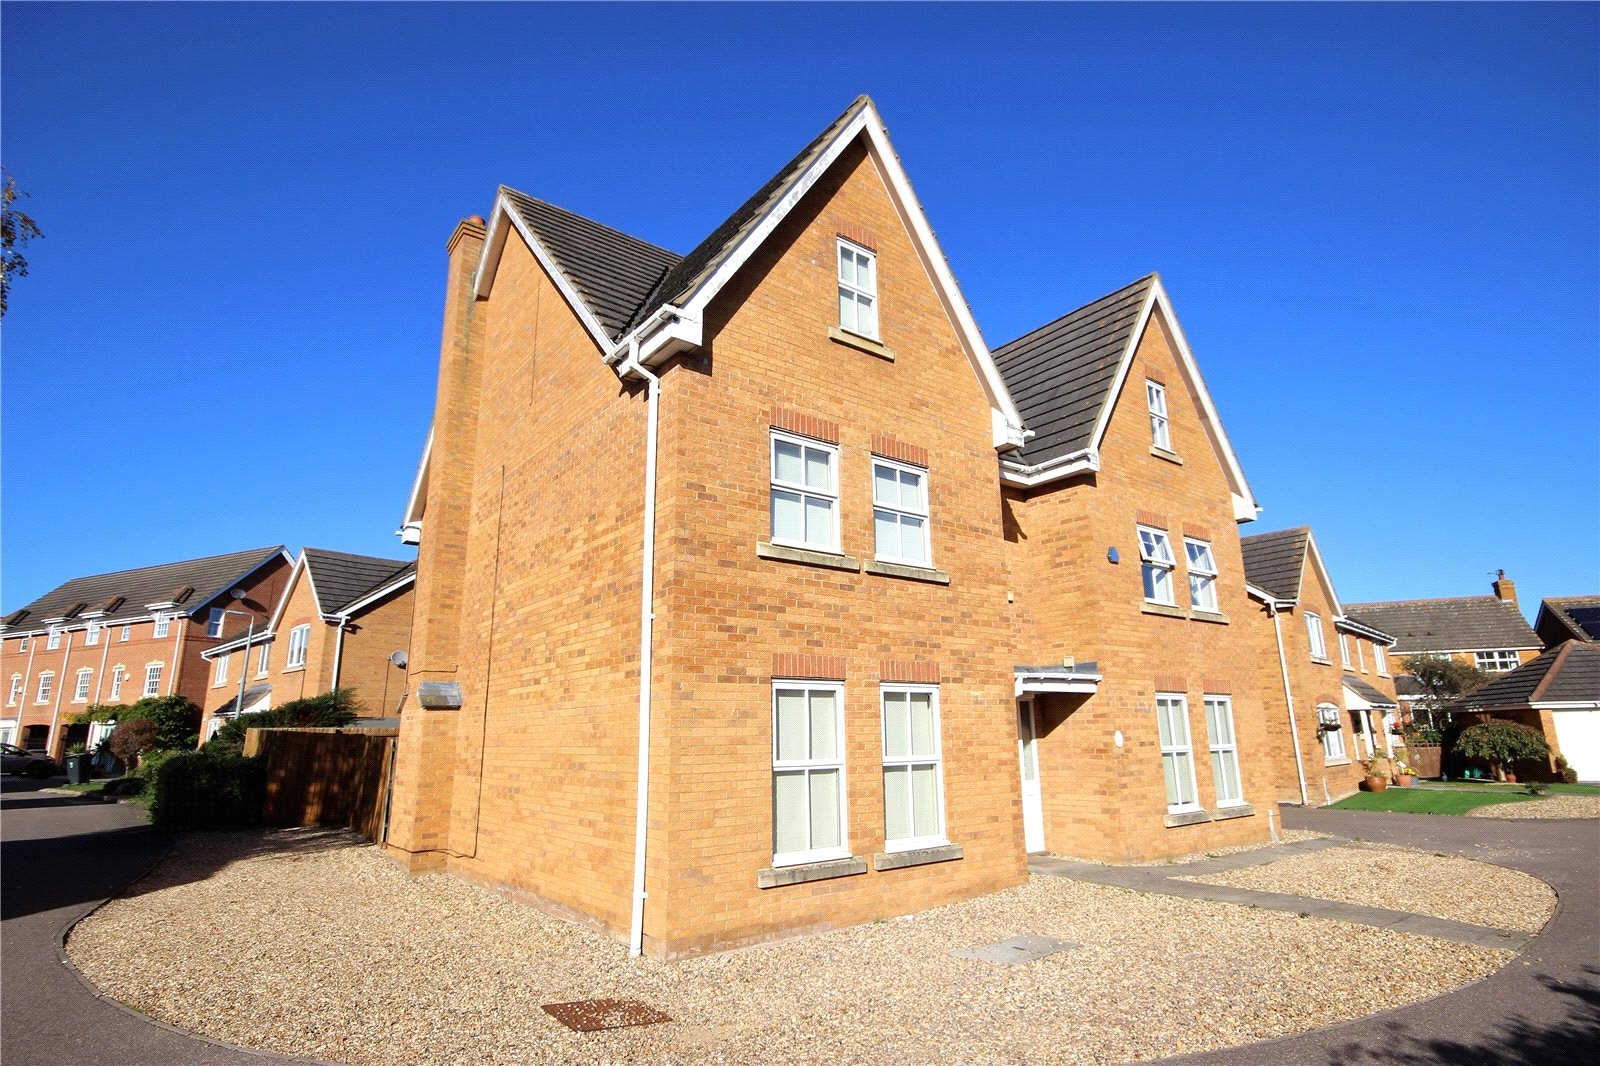 1 bed to rent in Marston Moretaine, MK43 0AE, MK43